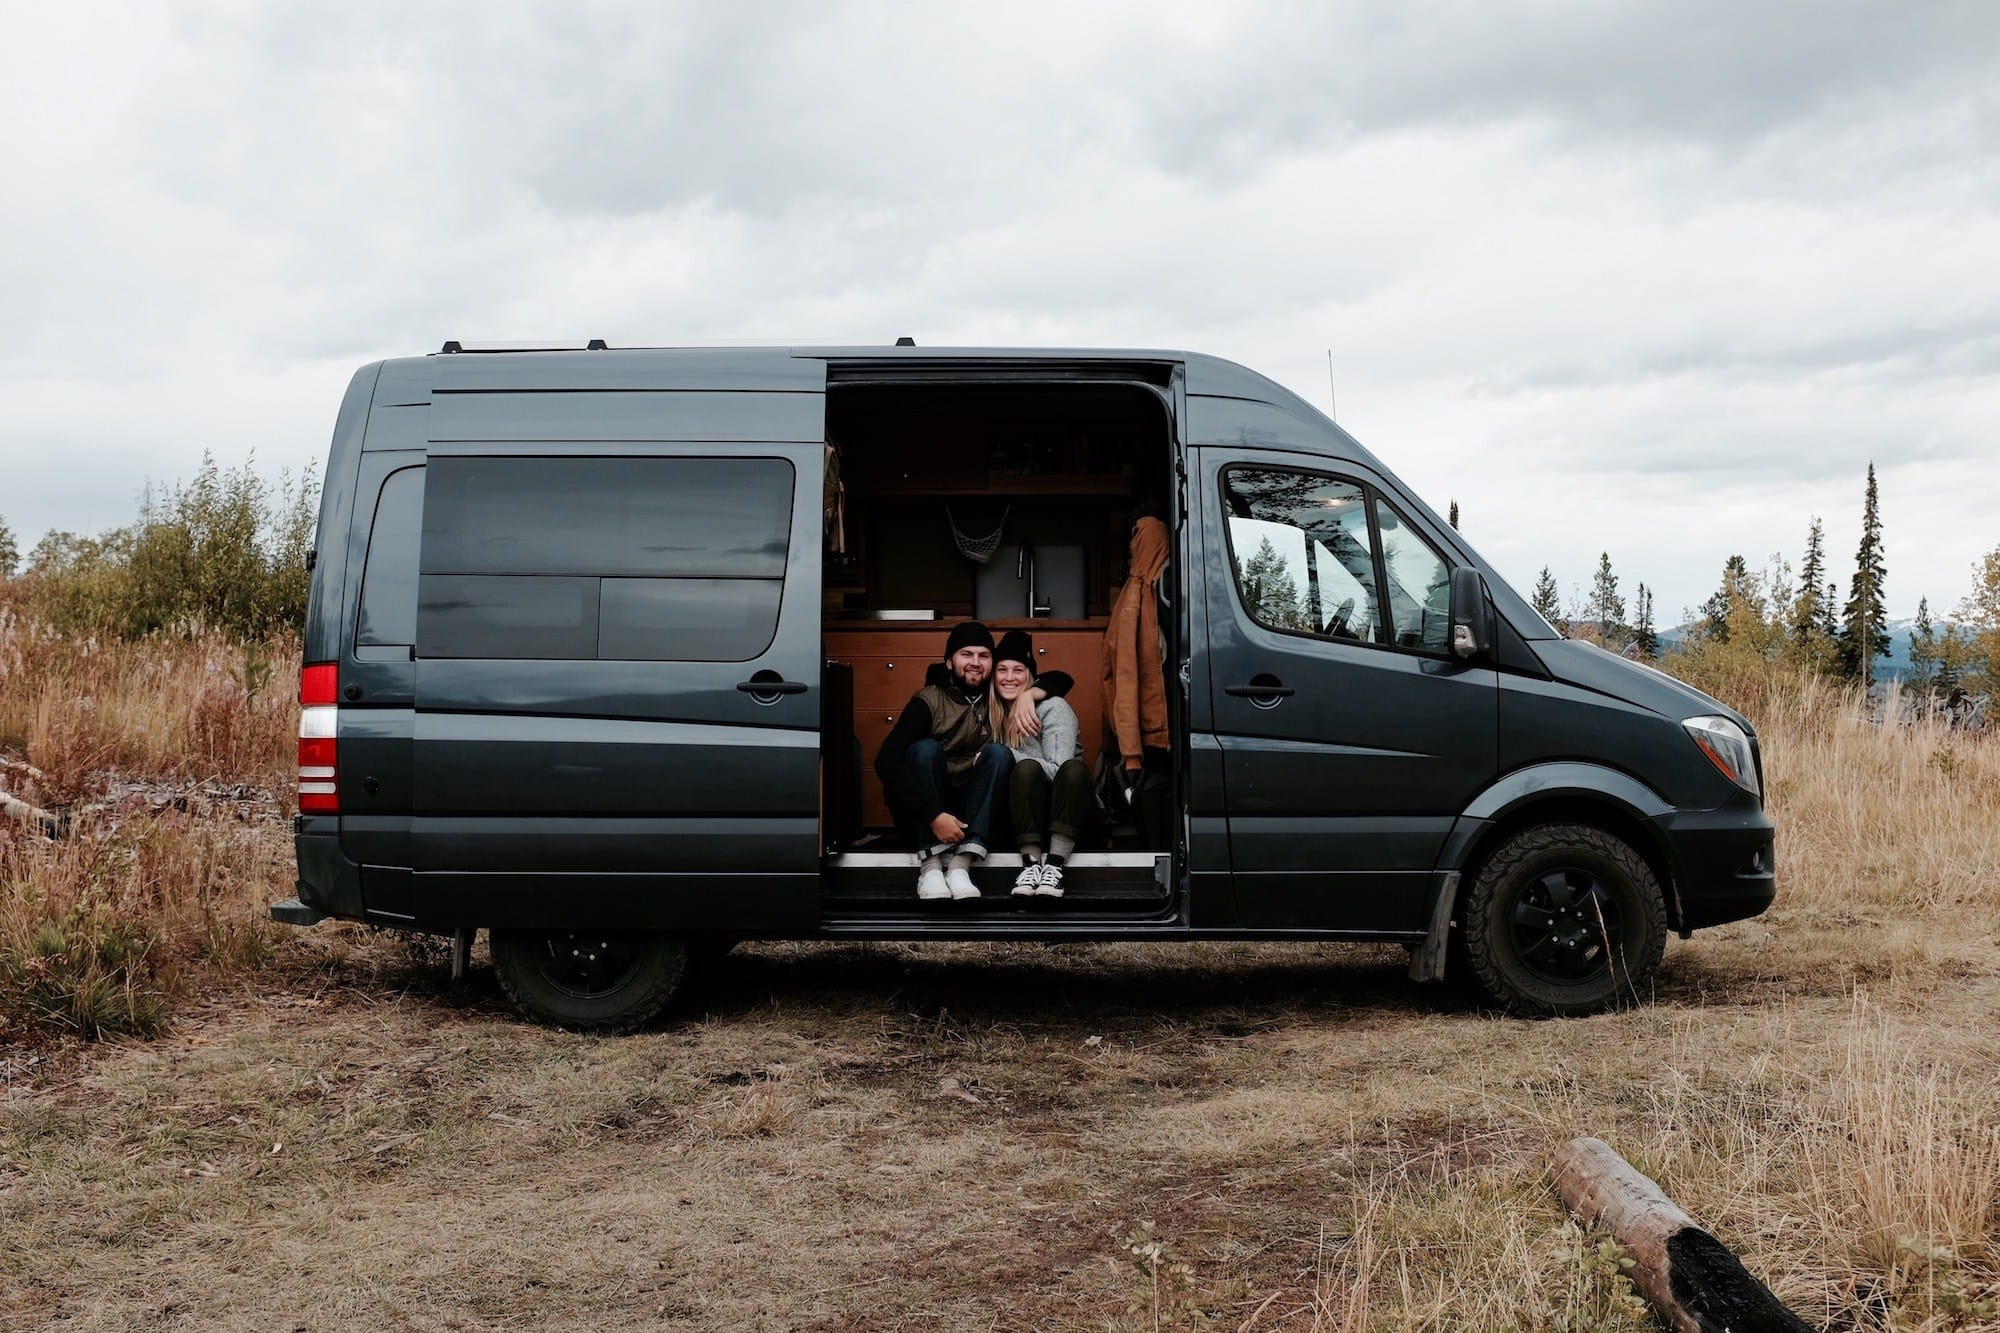 Sprinter Van Tour: So We Bought A Van